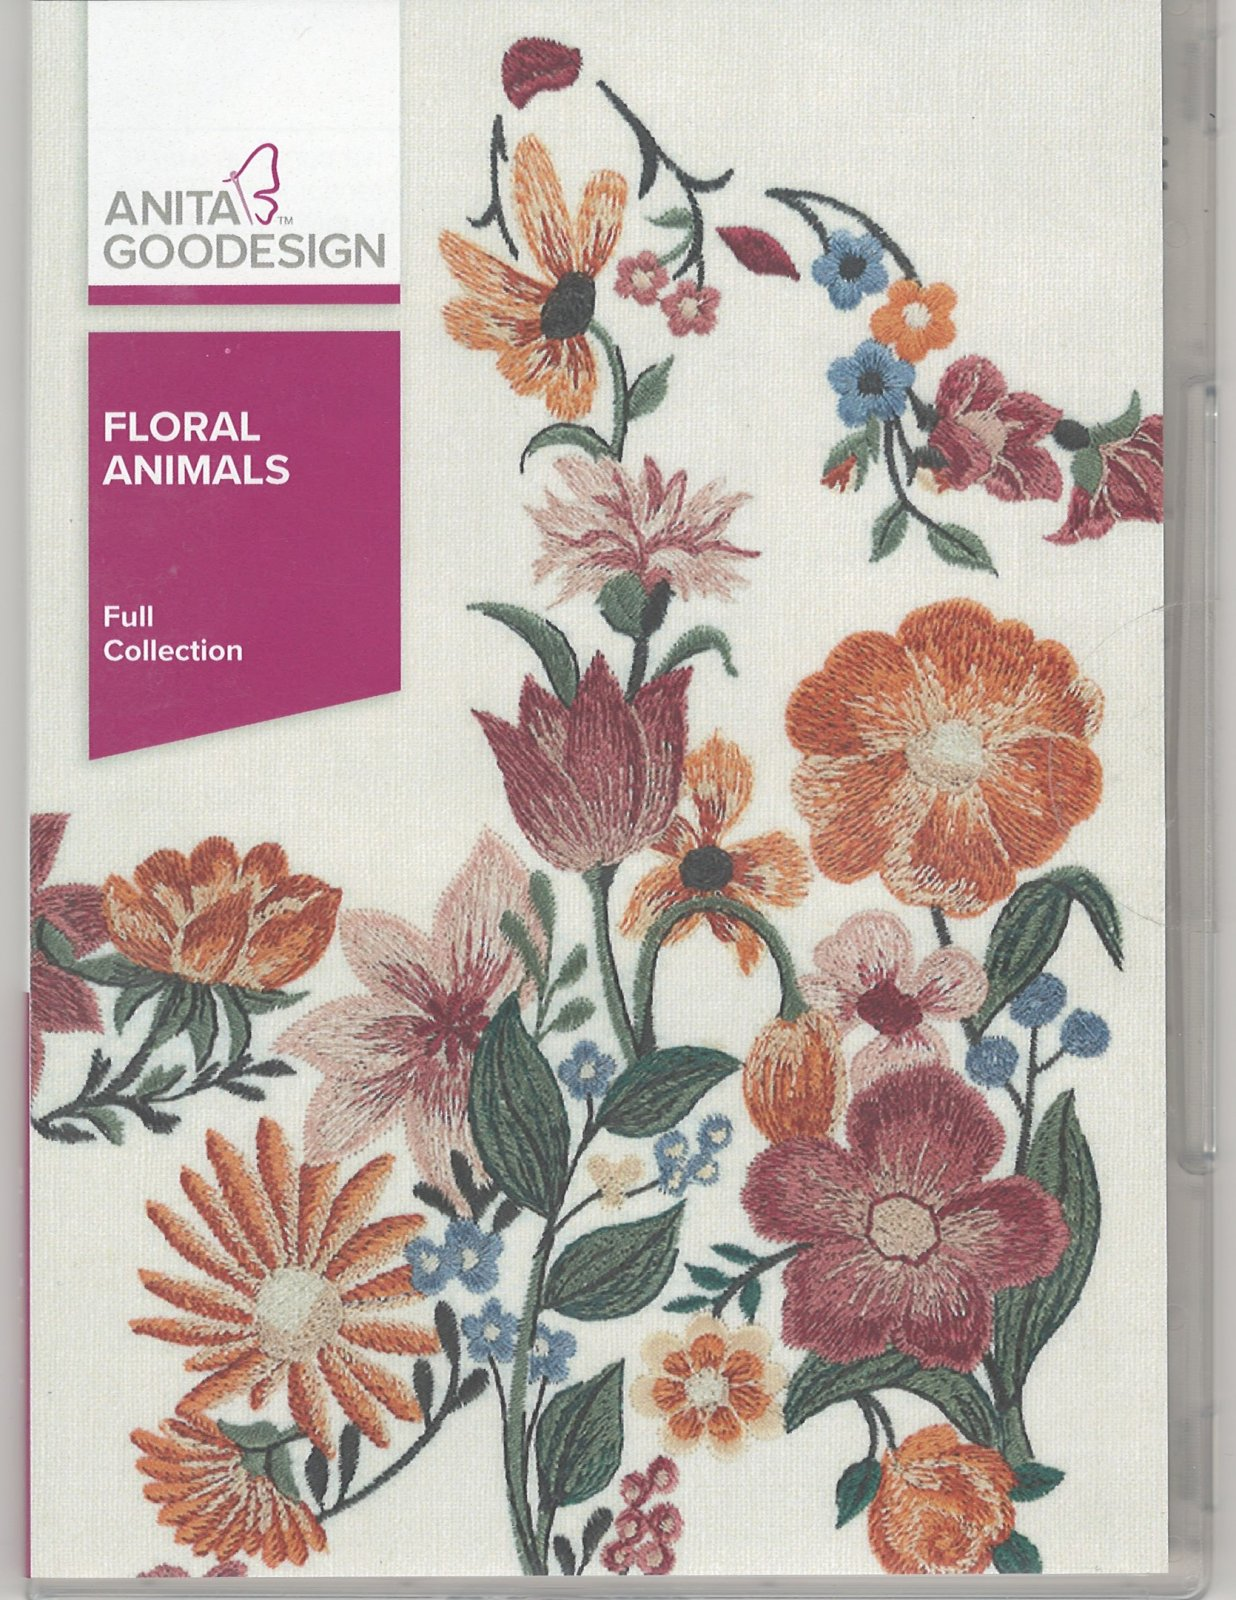 Anita Goodesign Machine Embroidery Designs Floral Animals Full Collection CD